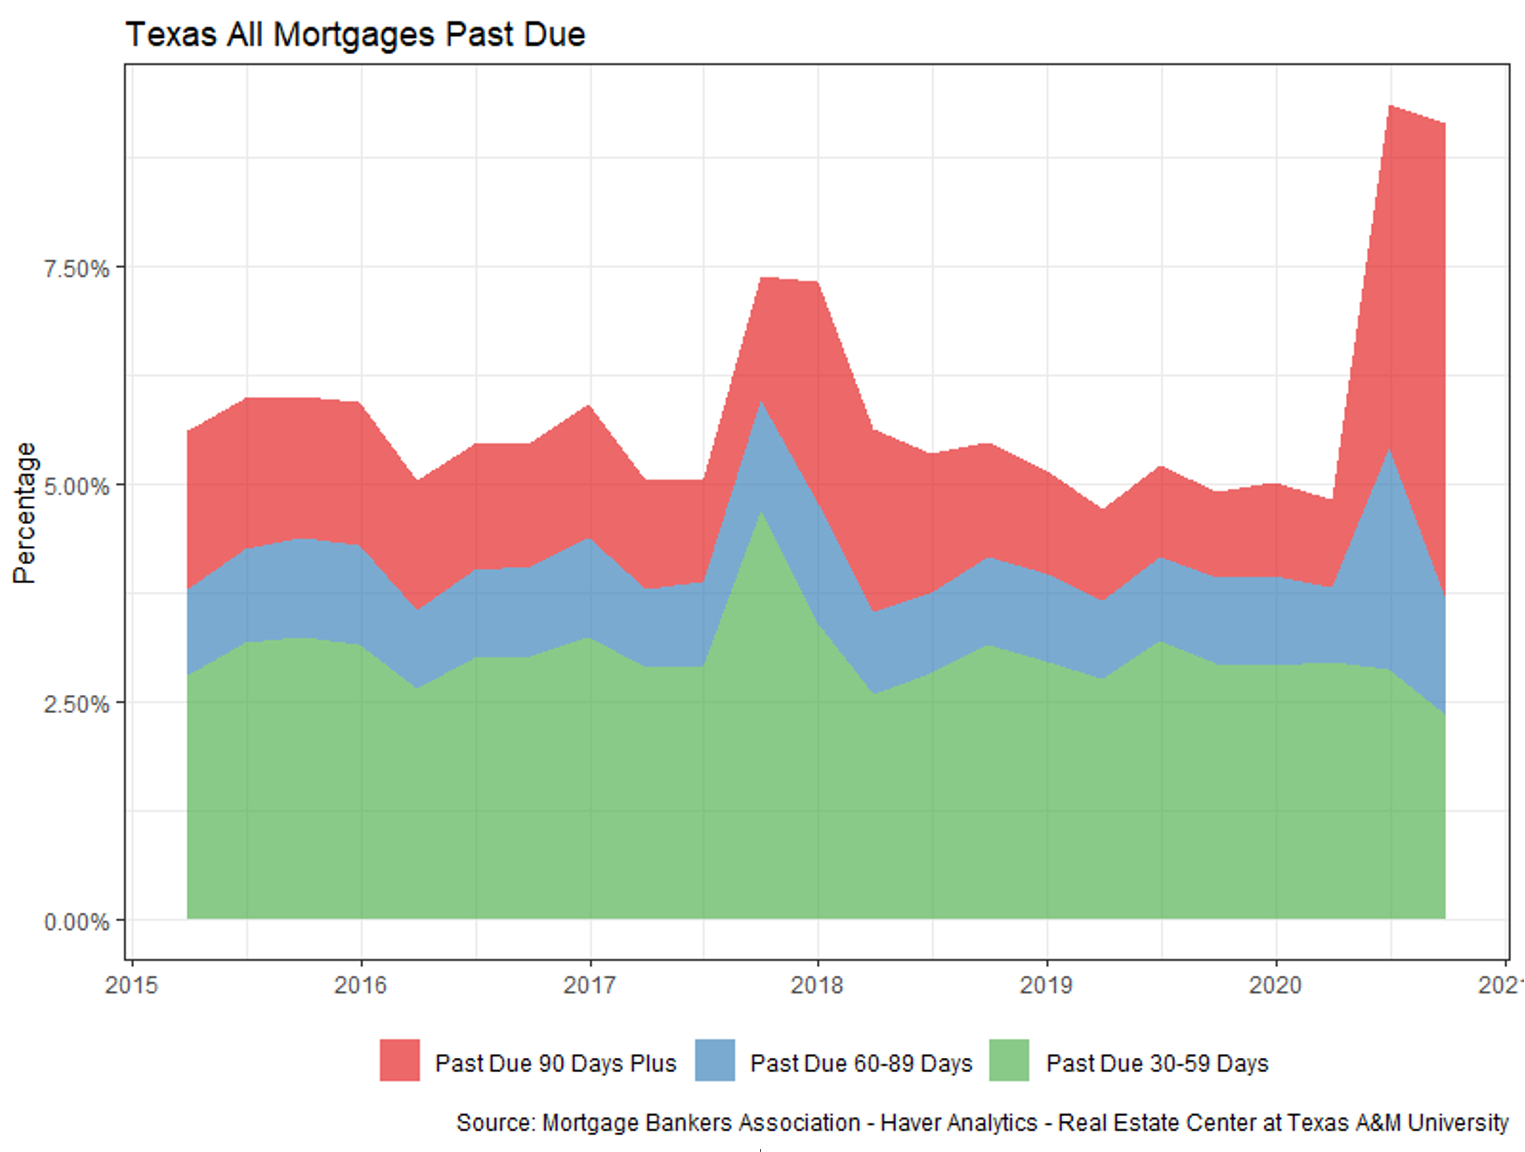 Texas All Mortgages Past Due